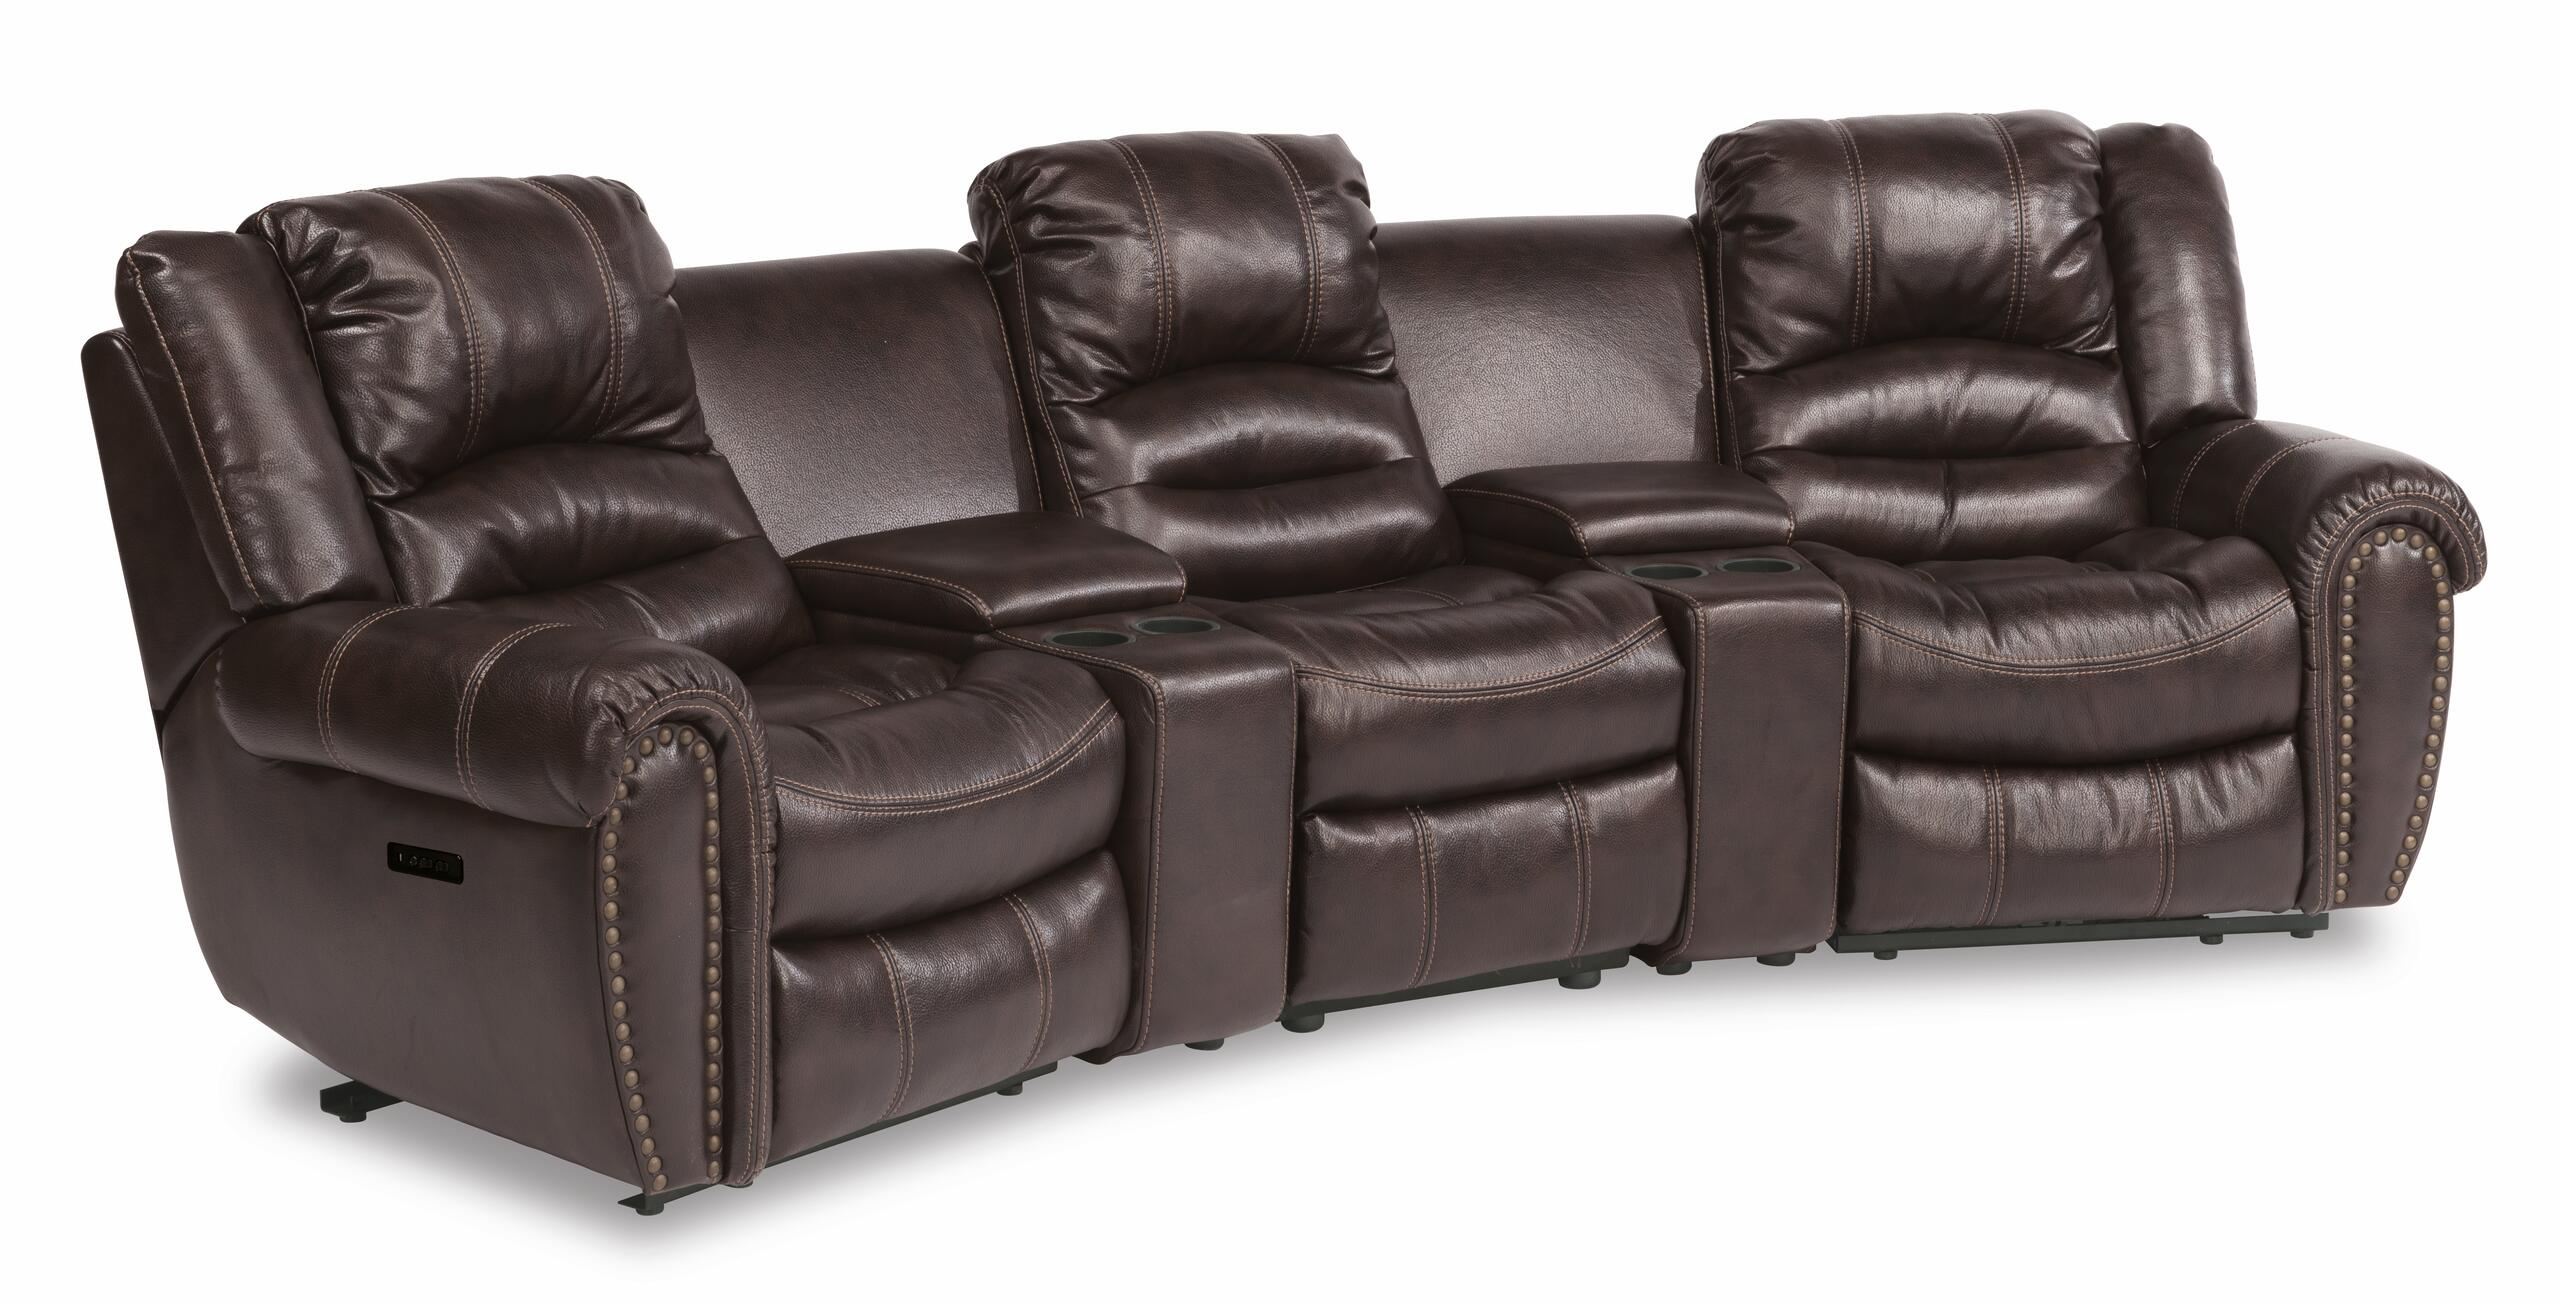 FlexsteelTown Power Reclining Sectional With Power Headrests